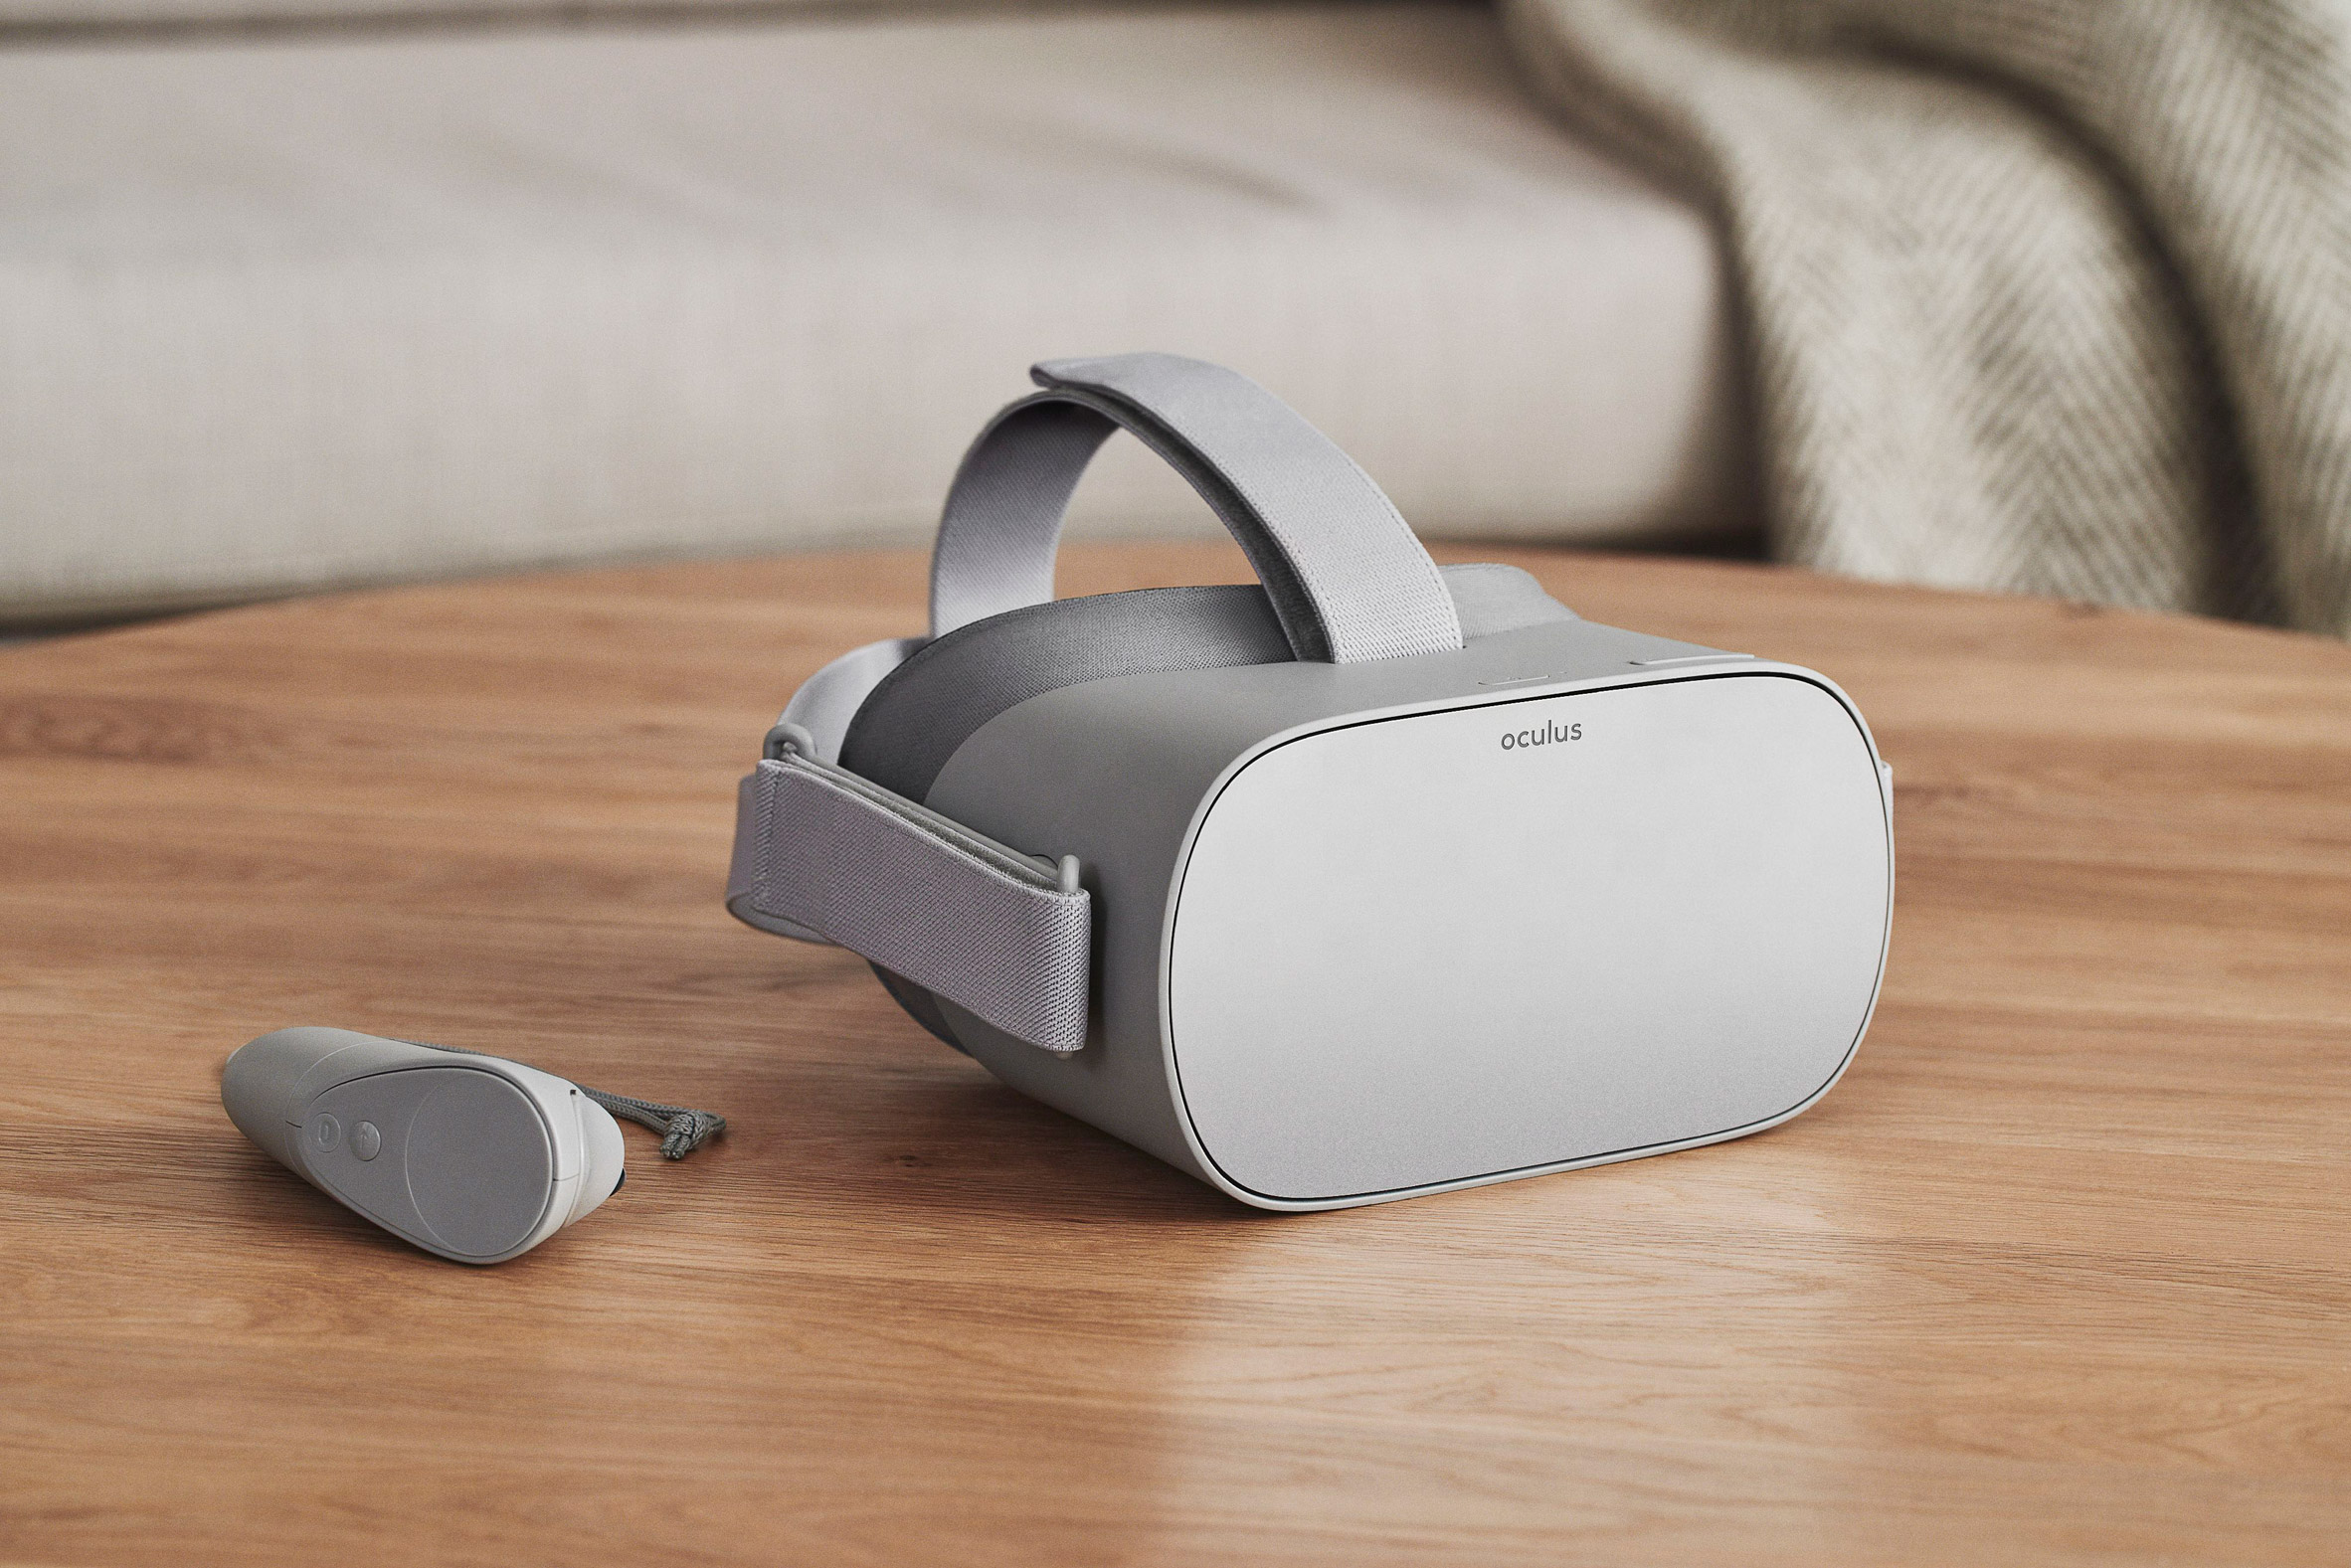 Facebook launches virtual-reality headset that can be used without other devices